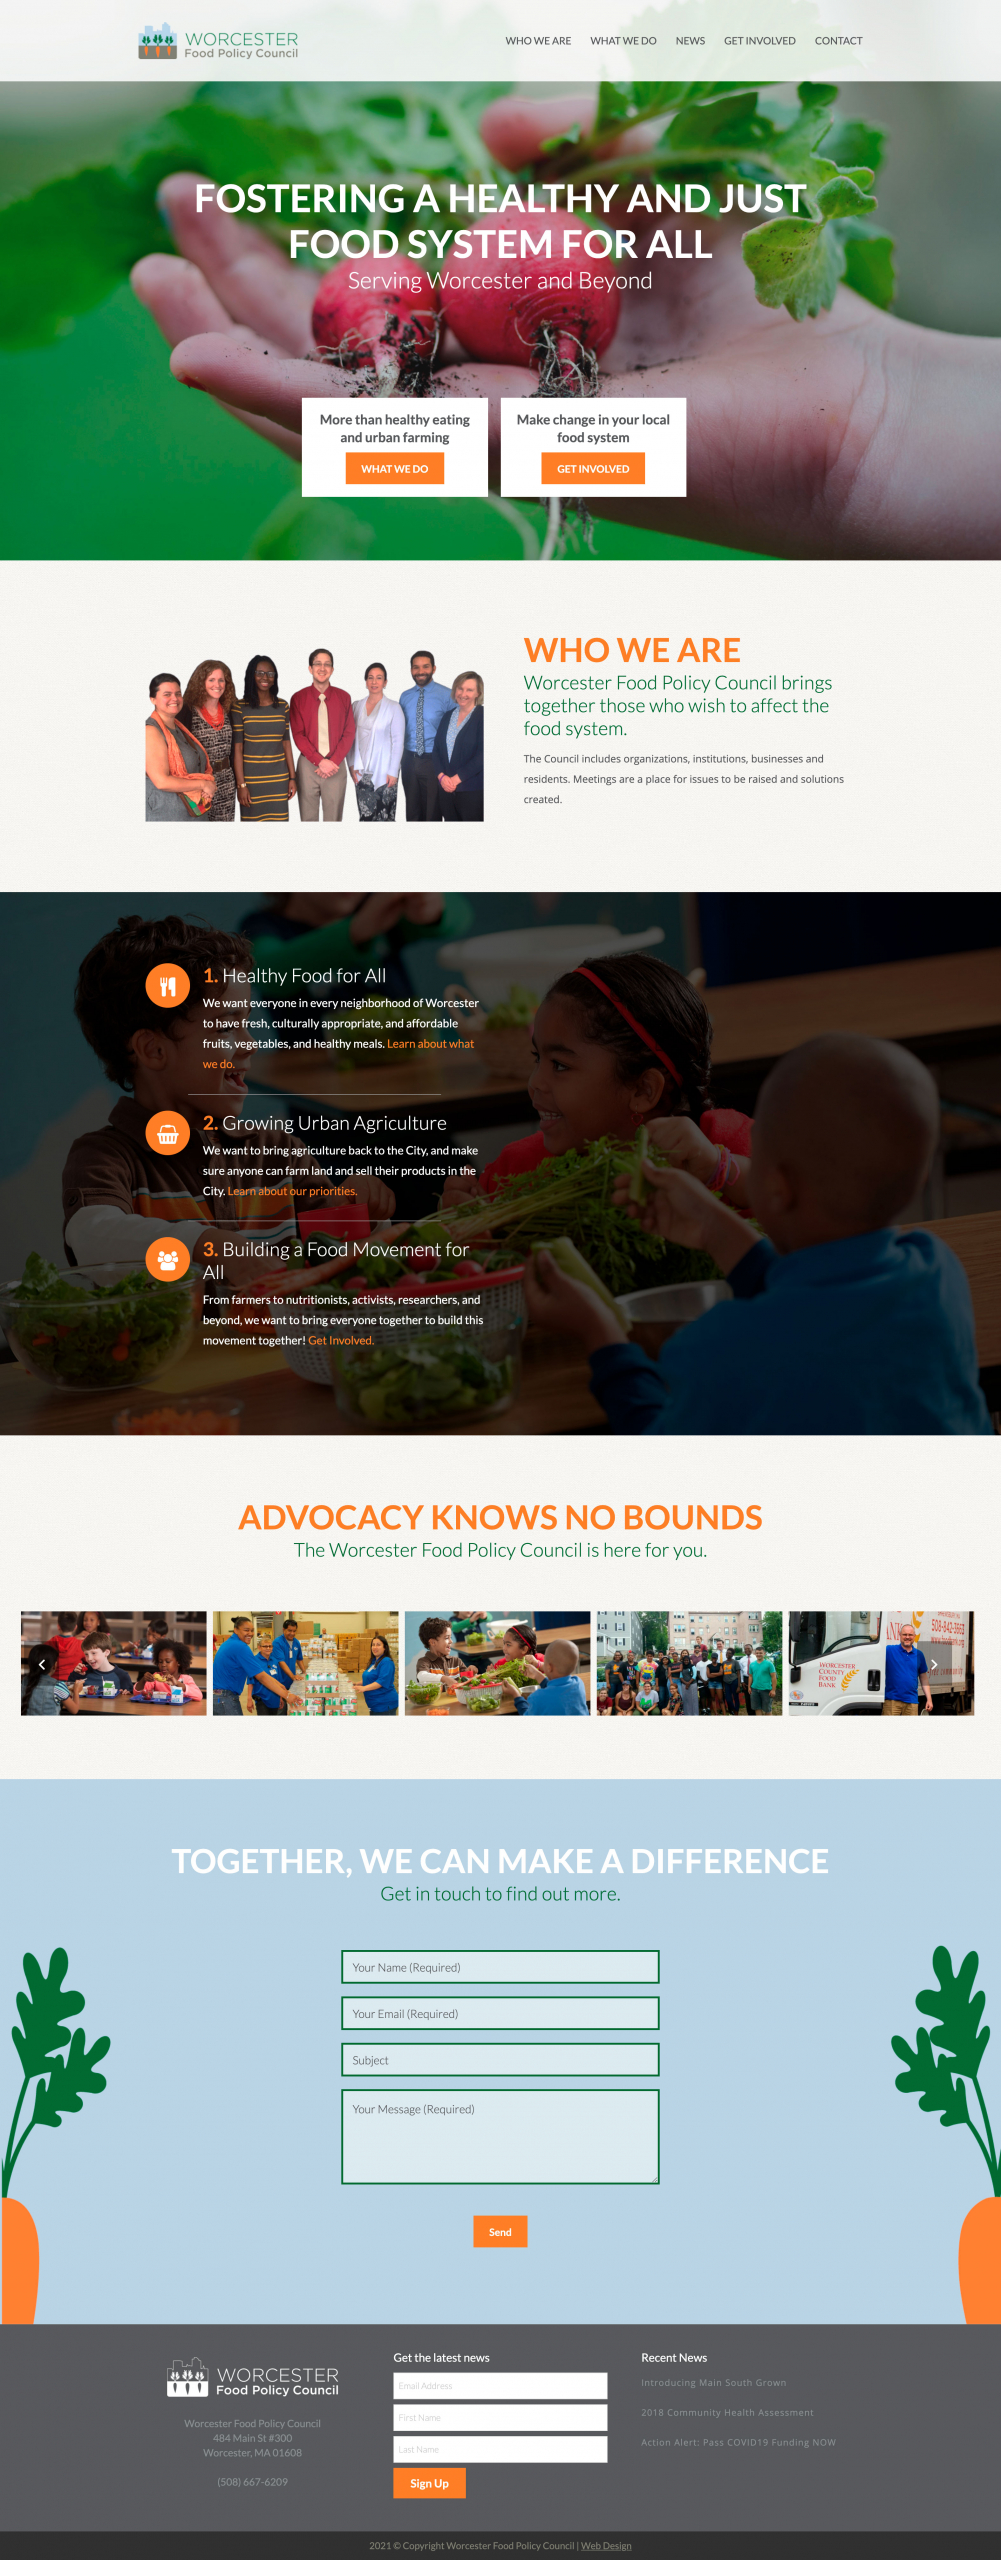 Worcester Food Policy Council homepage screenshot.org